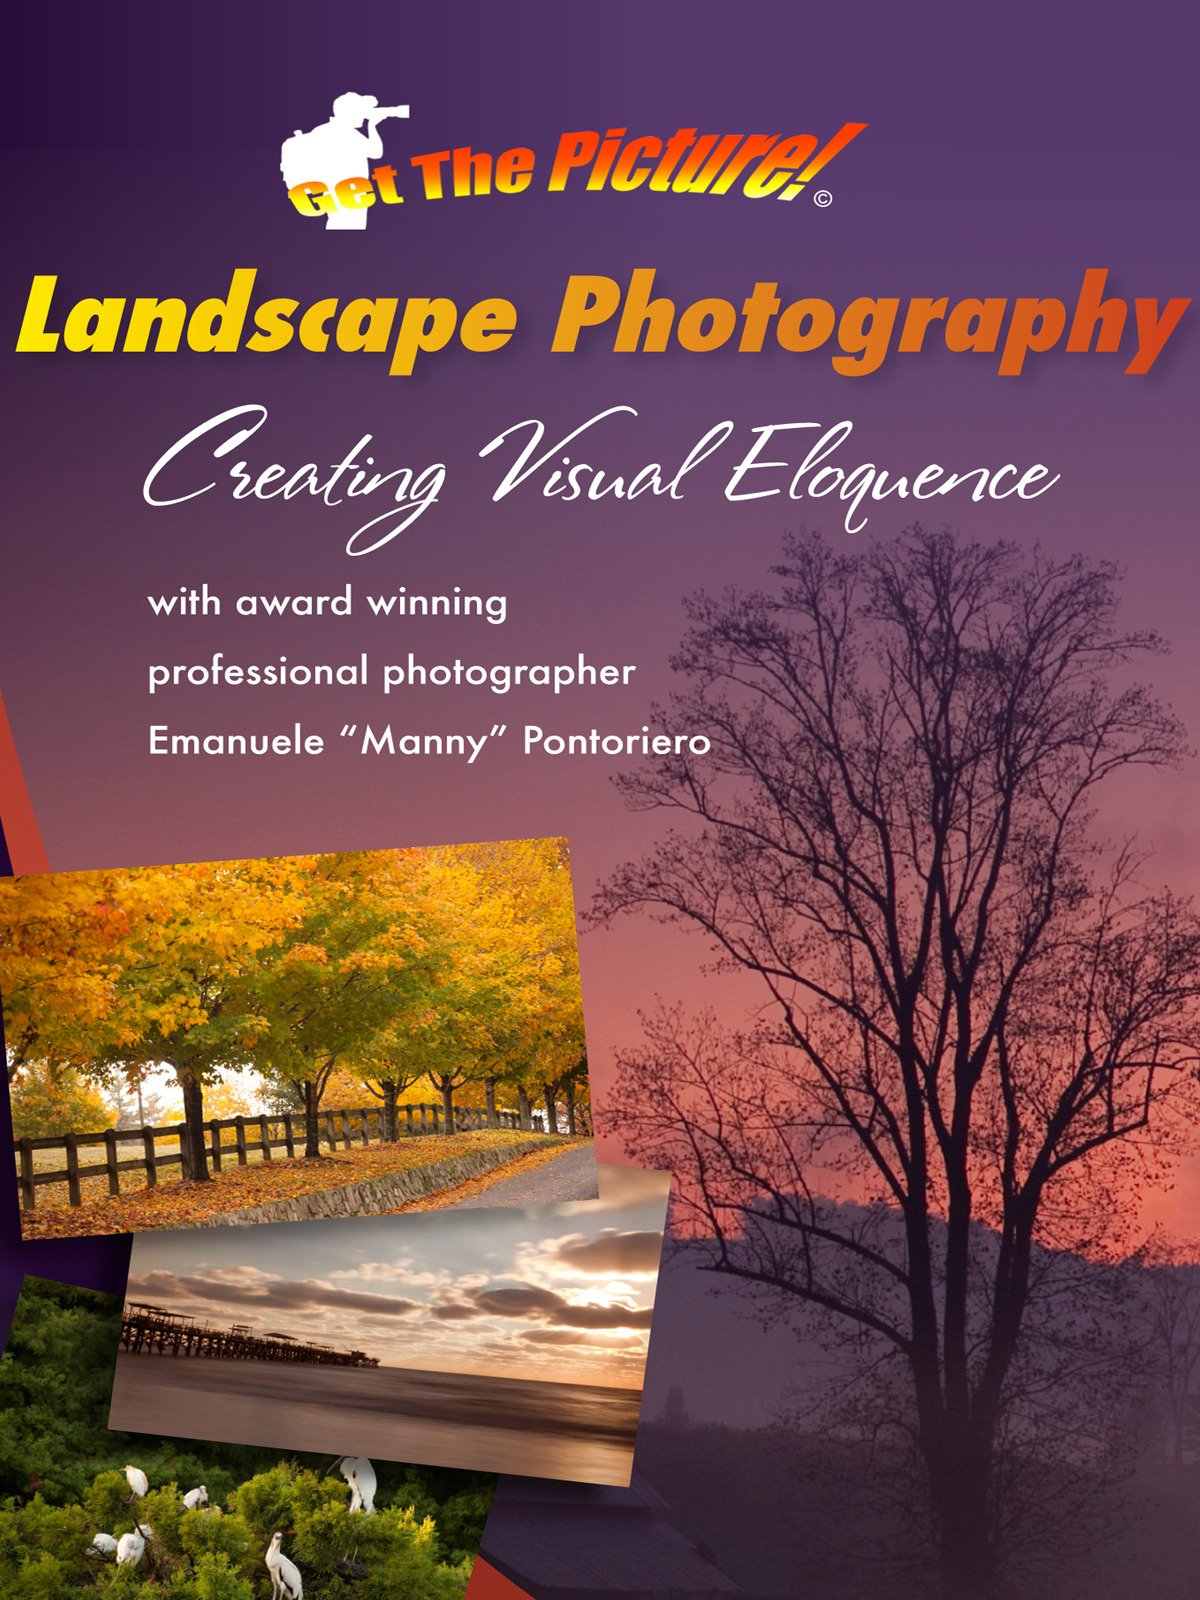 Landscape Photography: Creating Visual Eloquence